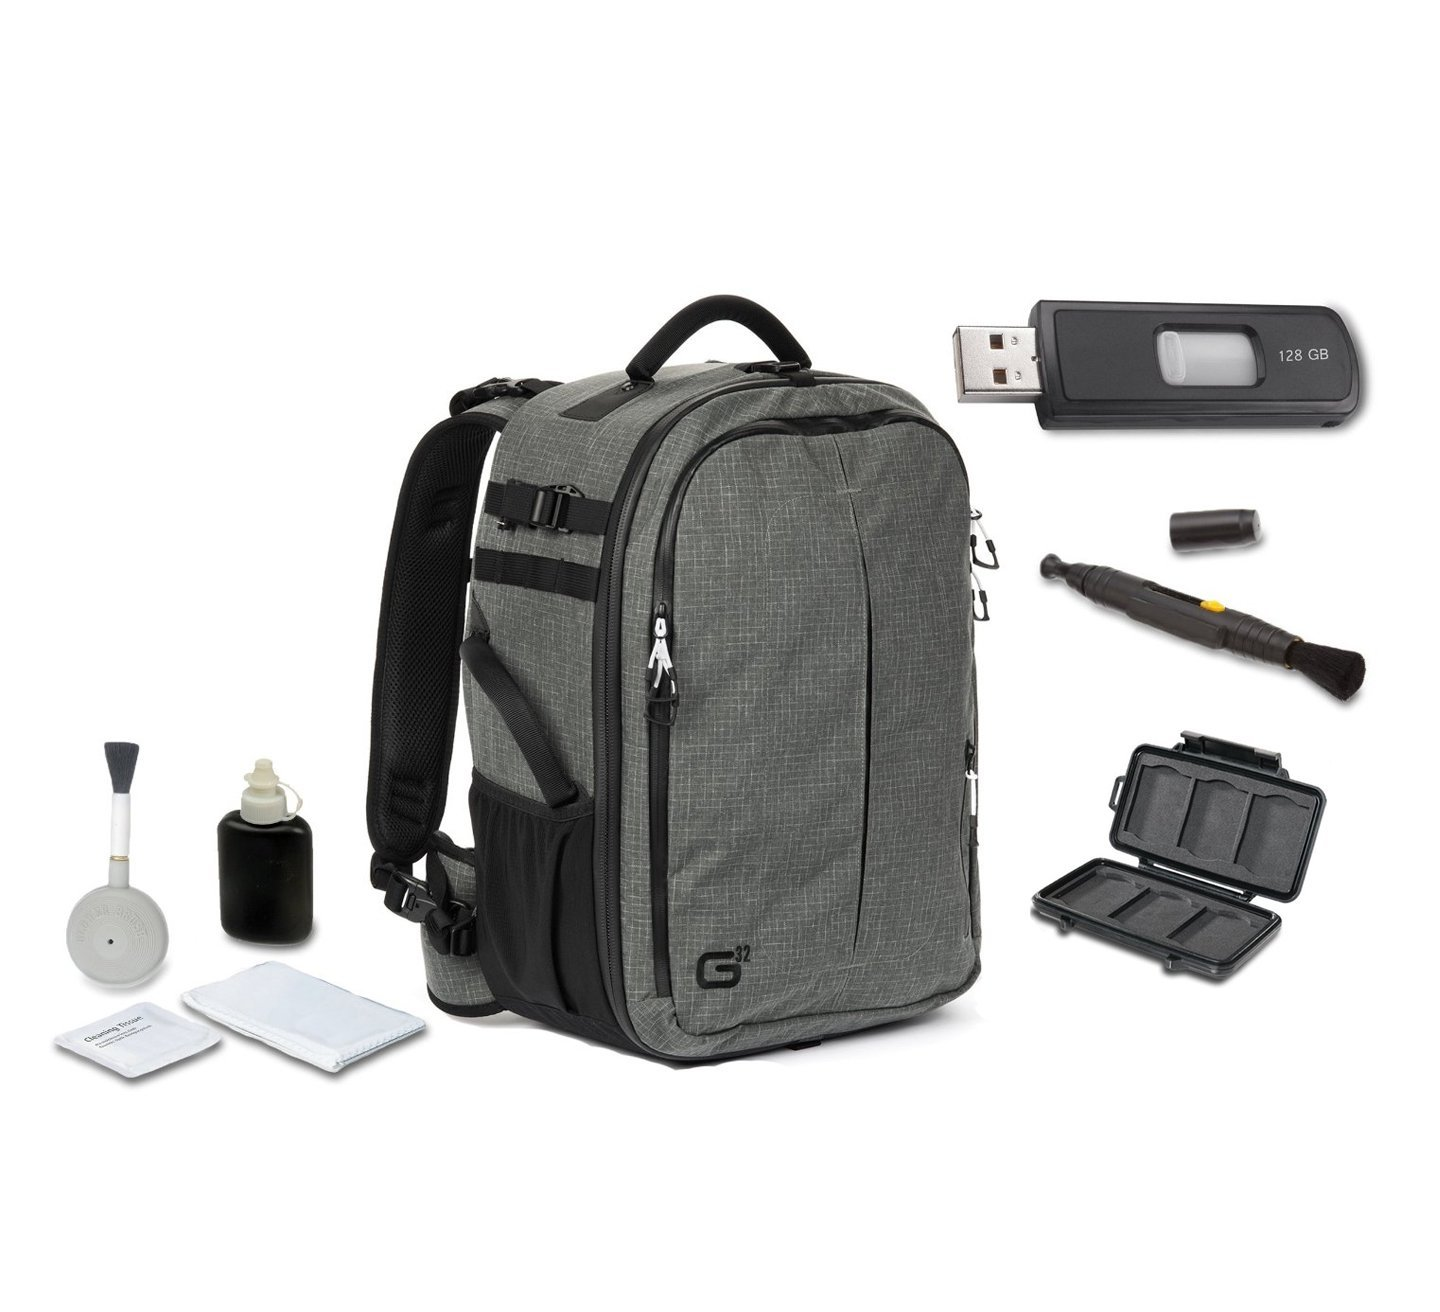 Tamrac G32 Backpack (Dark Olive) + High Speed 128GB USB Stick + Cleaning Kit 4pc + Lens Pen Cleaning Brush + Memory Card Wallet